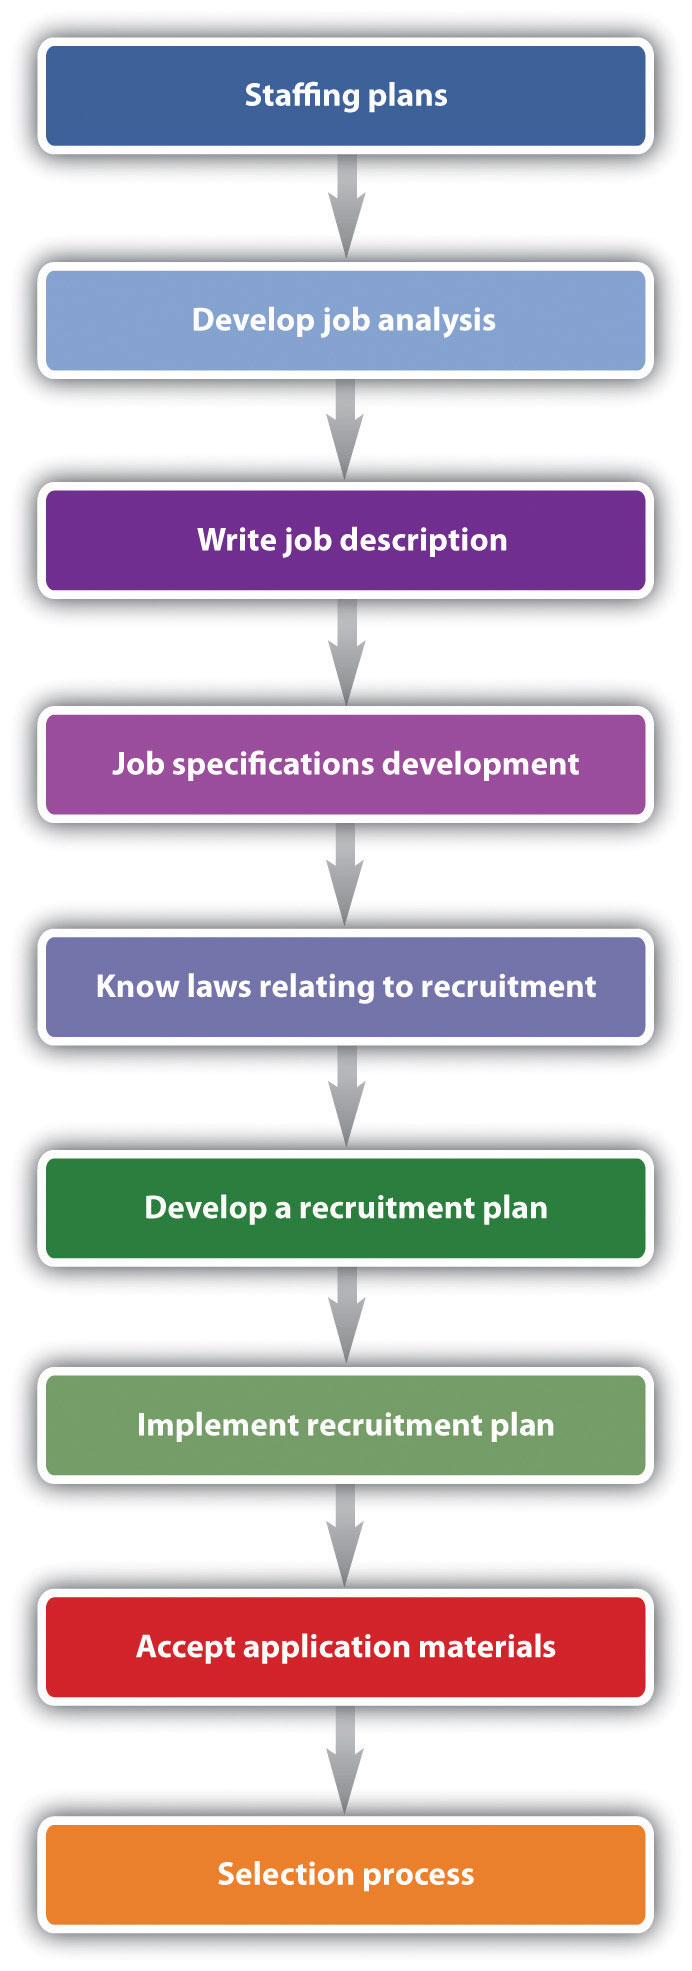 Overview of the steps to the recruitment process: staffing plans; develop job analysis; write job description; job specifications development; know lwas relating to recruitment; develop a recruitment plan; implement recruitment plan; accept application materials; selection process.